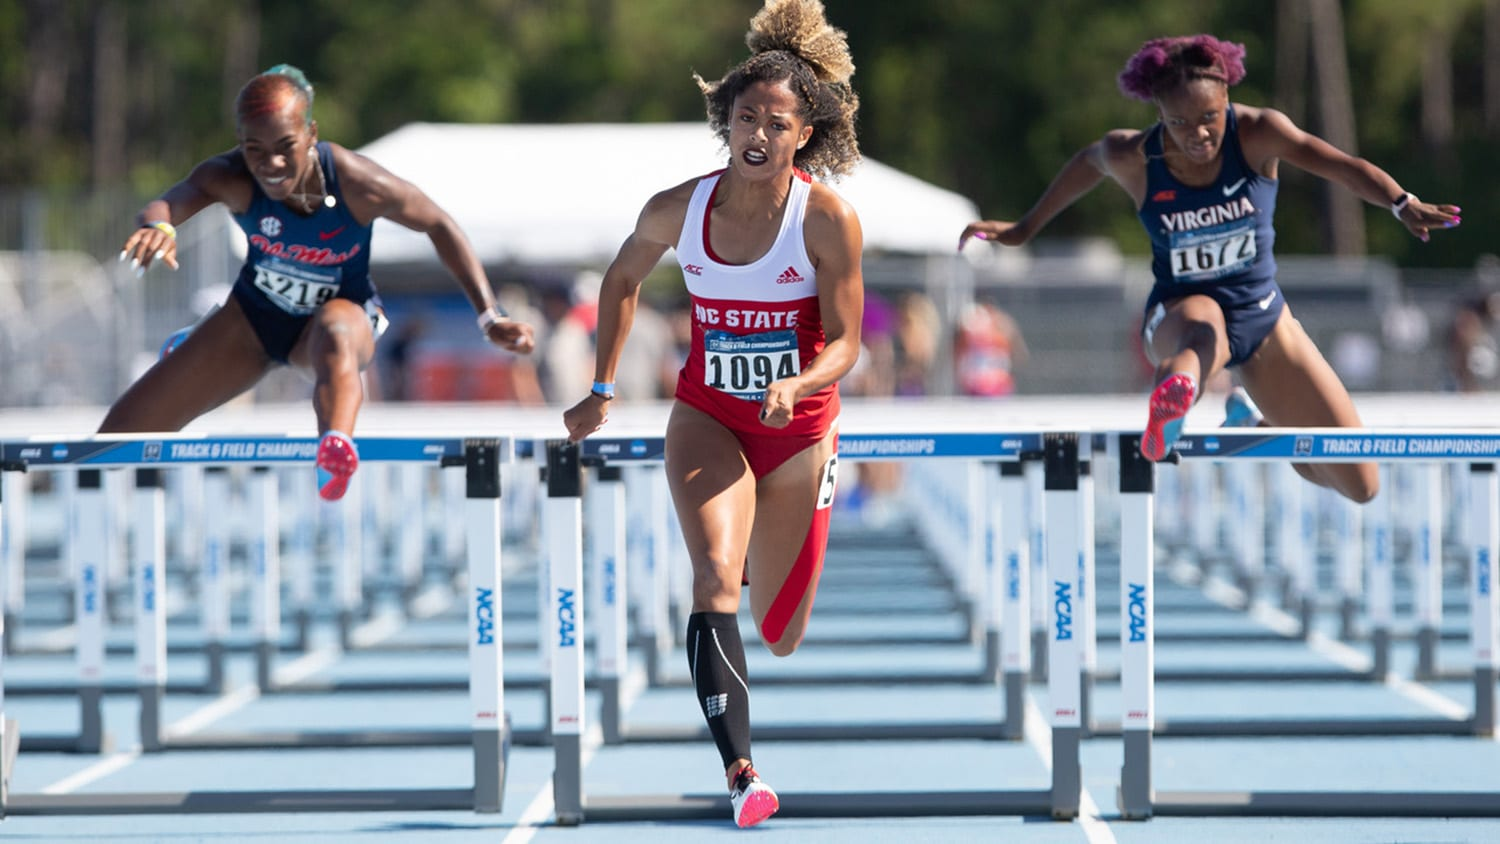 Gabrielle Cunningham jumps over a hurdle at a track and field event.